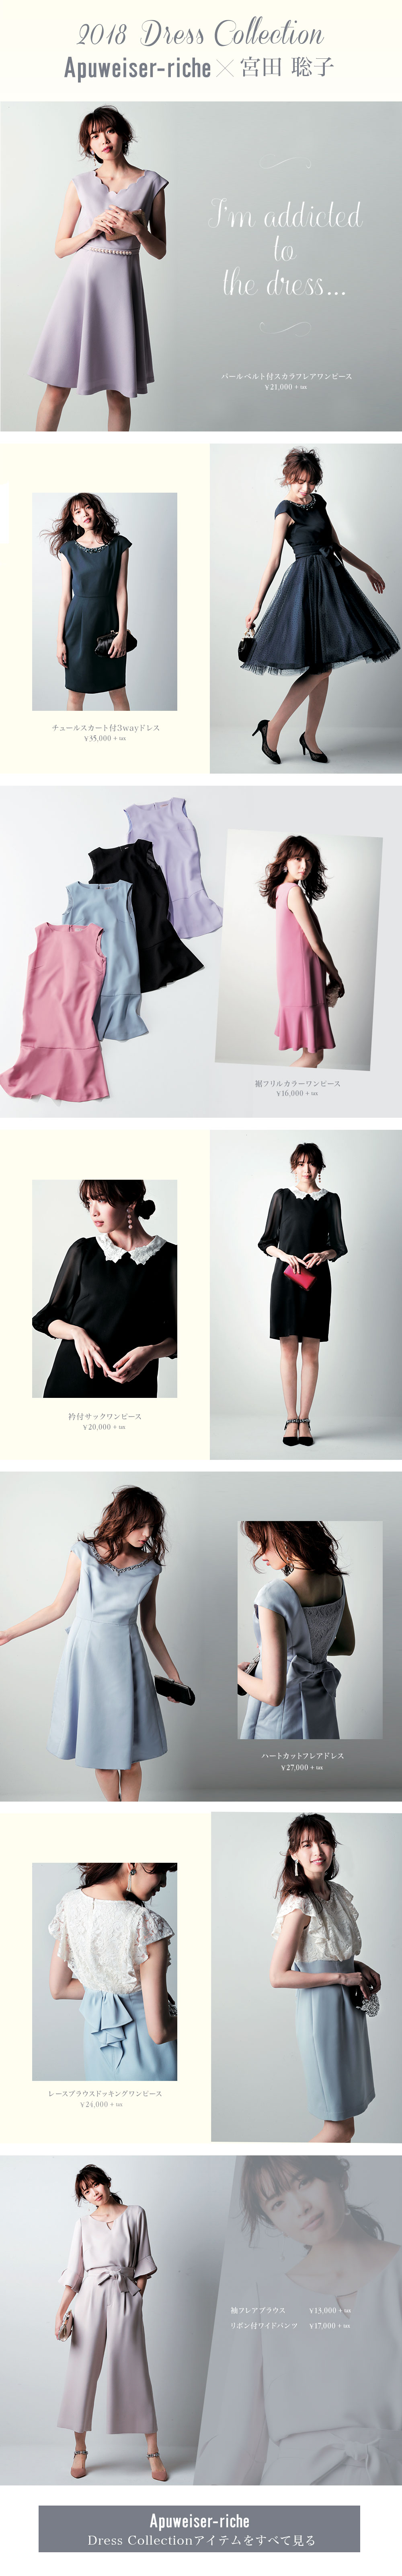 Dress Collection Apuweiser-riche × 宮田聡子